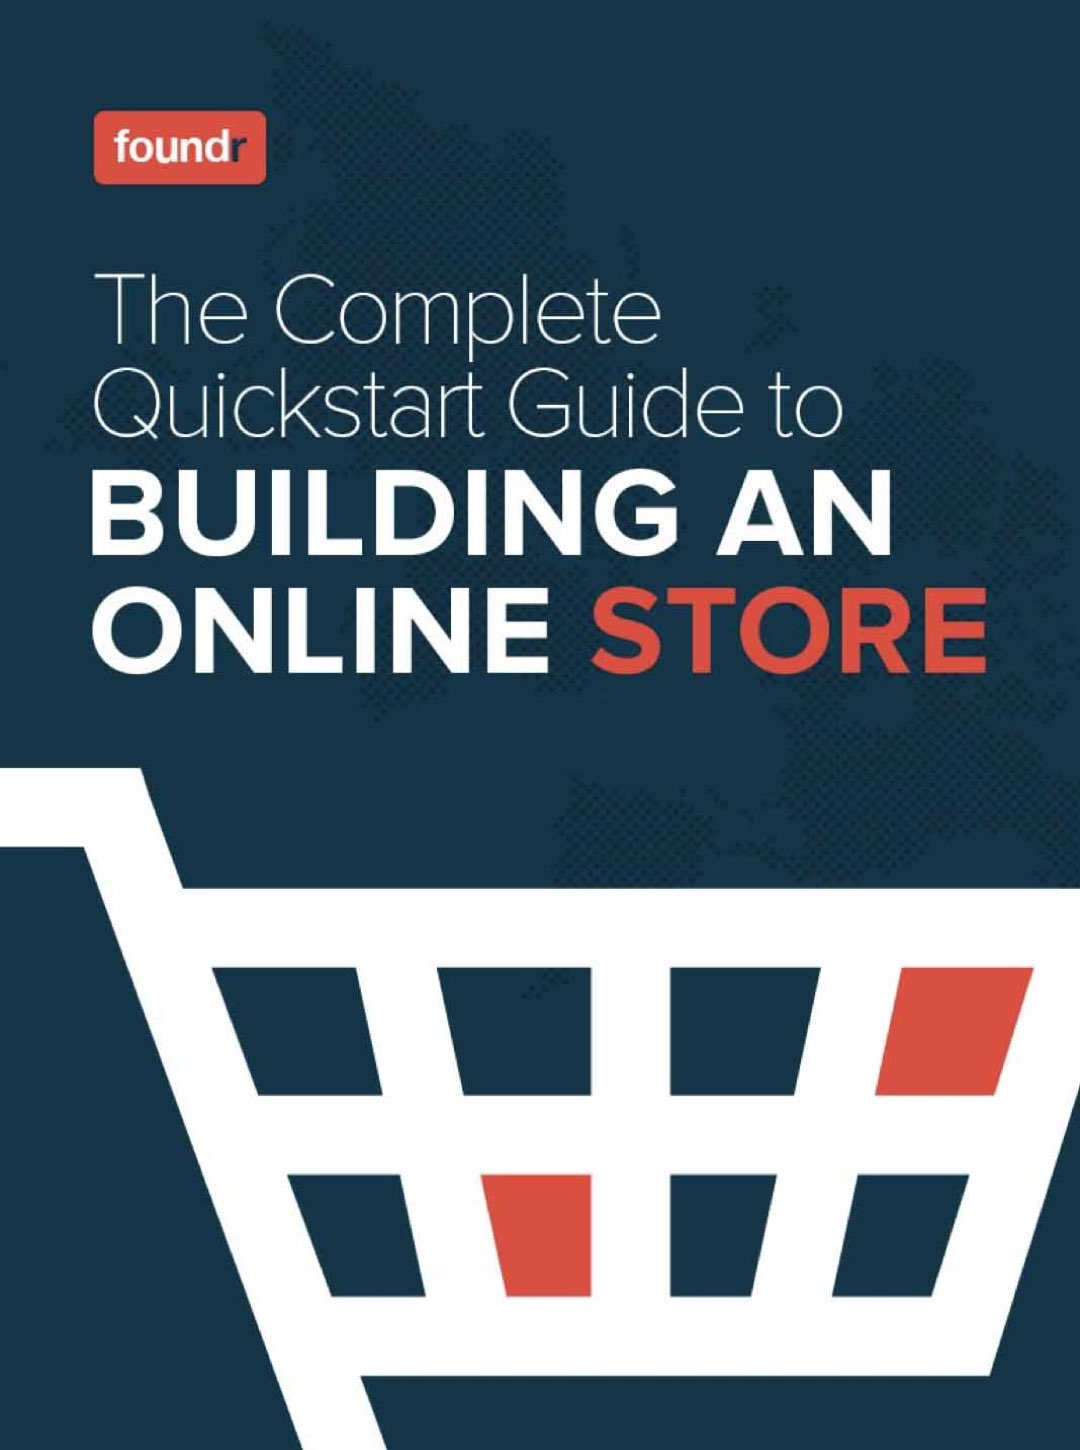 The Complete Quickstart Guide to Building An Online Store